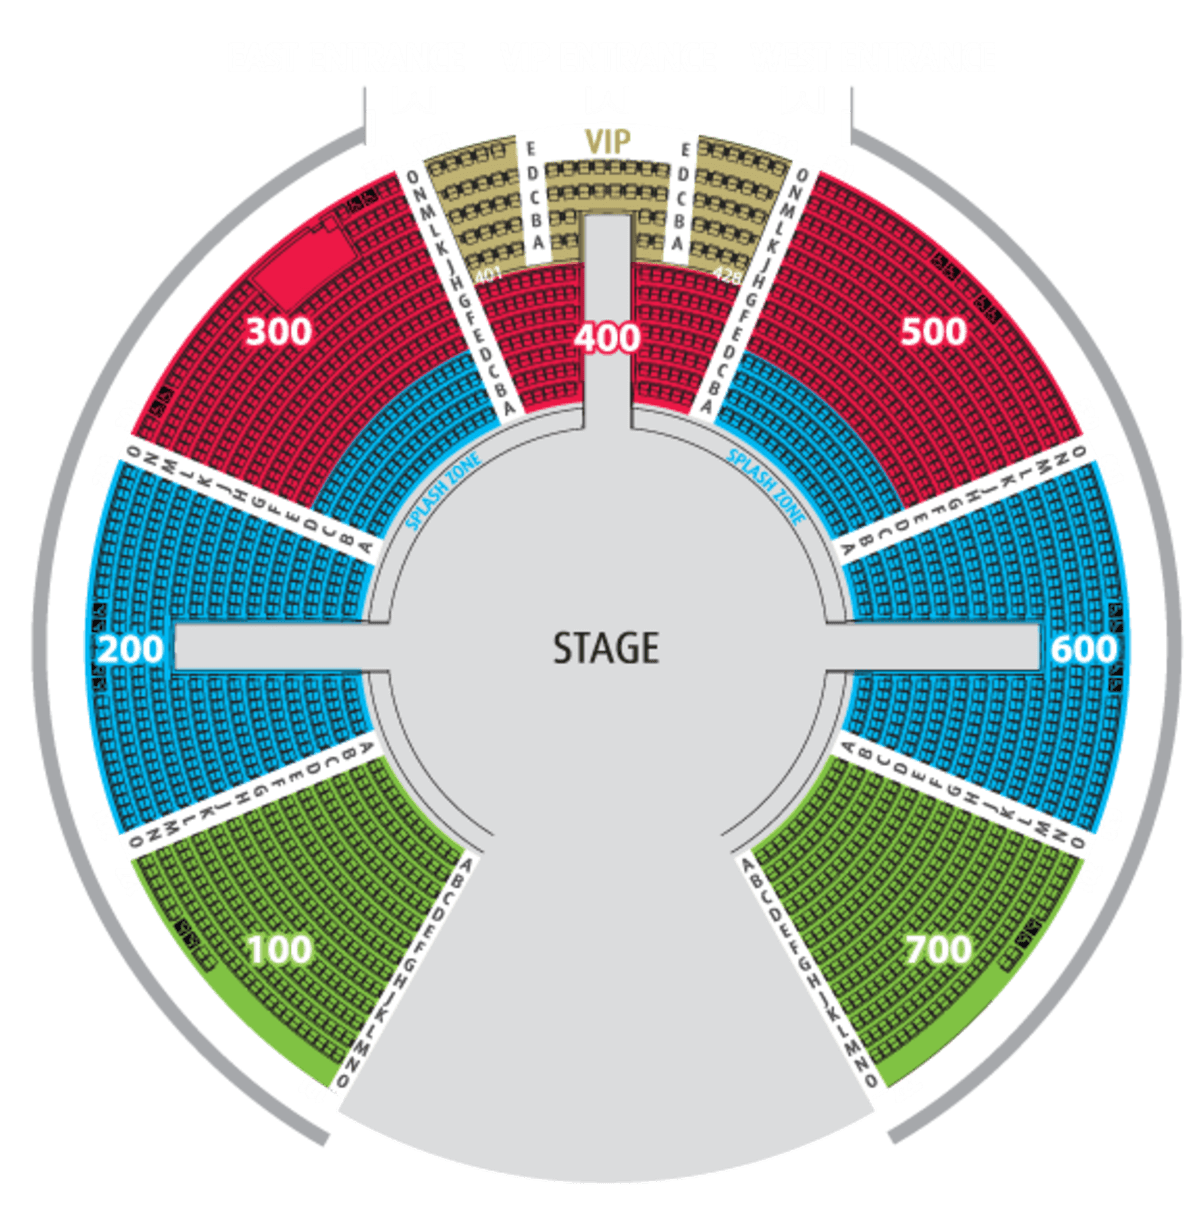 shows and performances in macau, house of dancing water seating area, house of dancing water seating chart